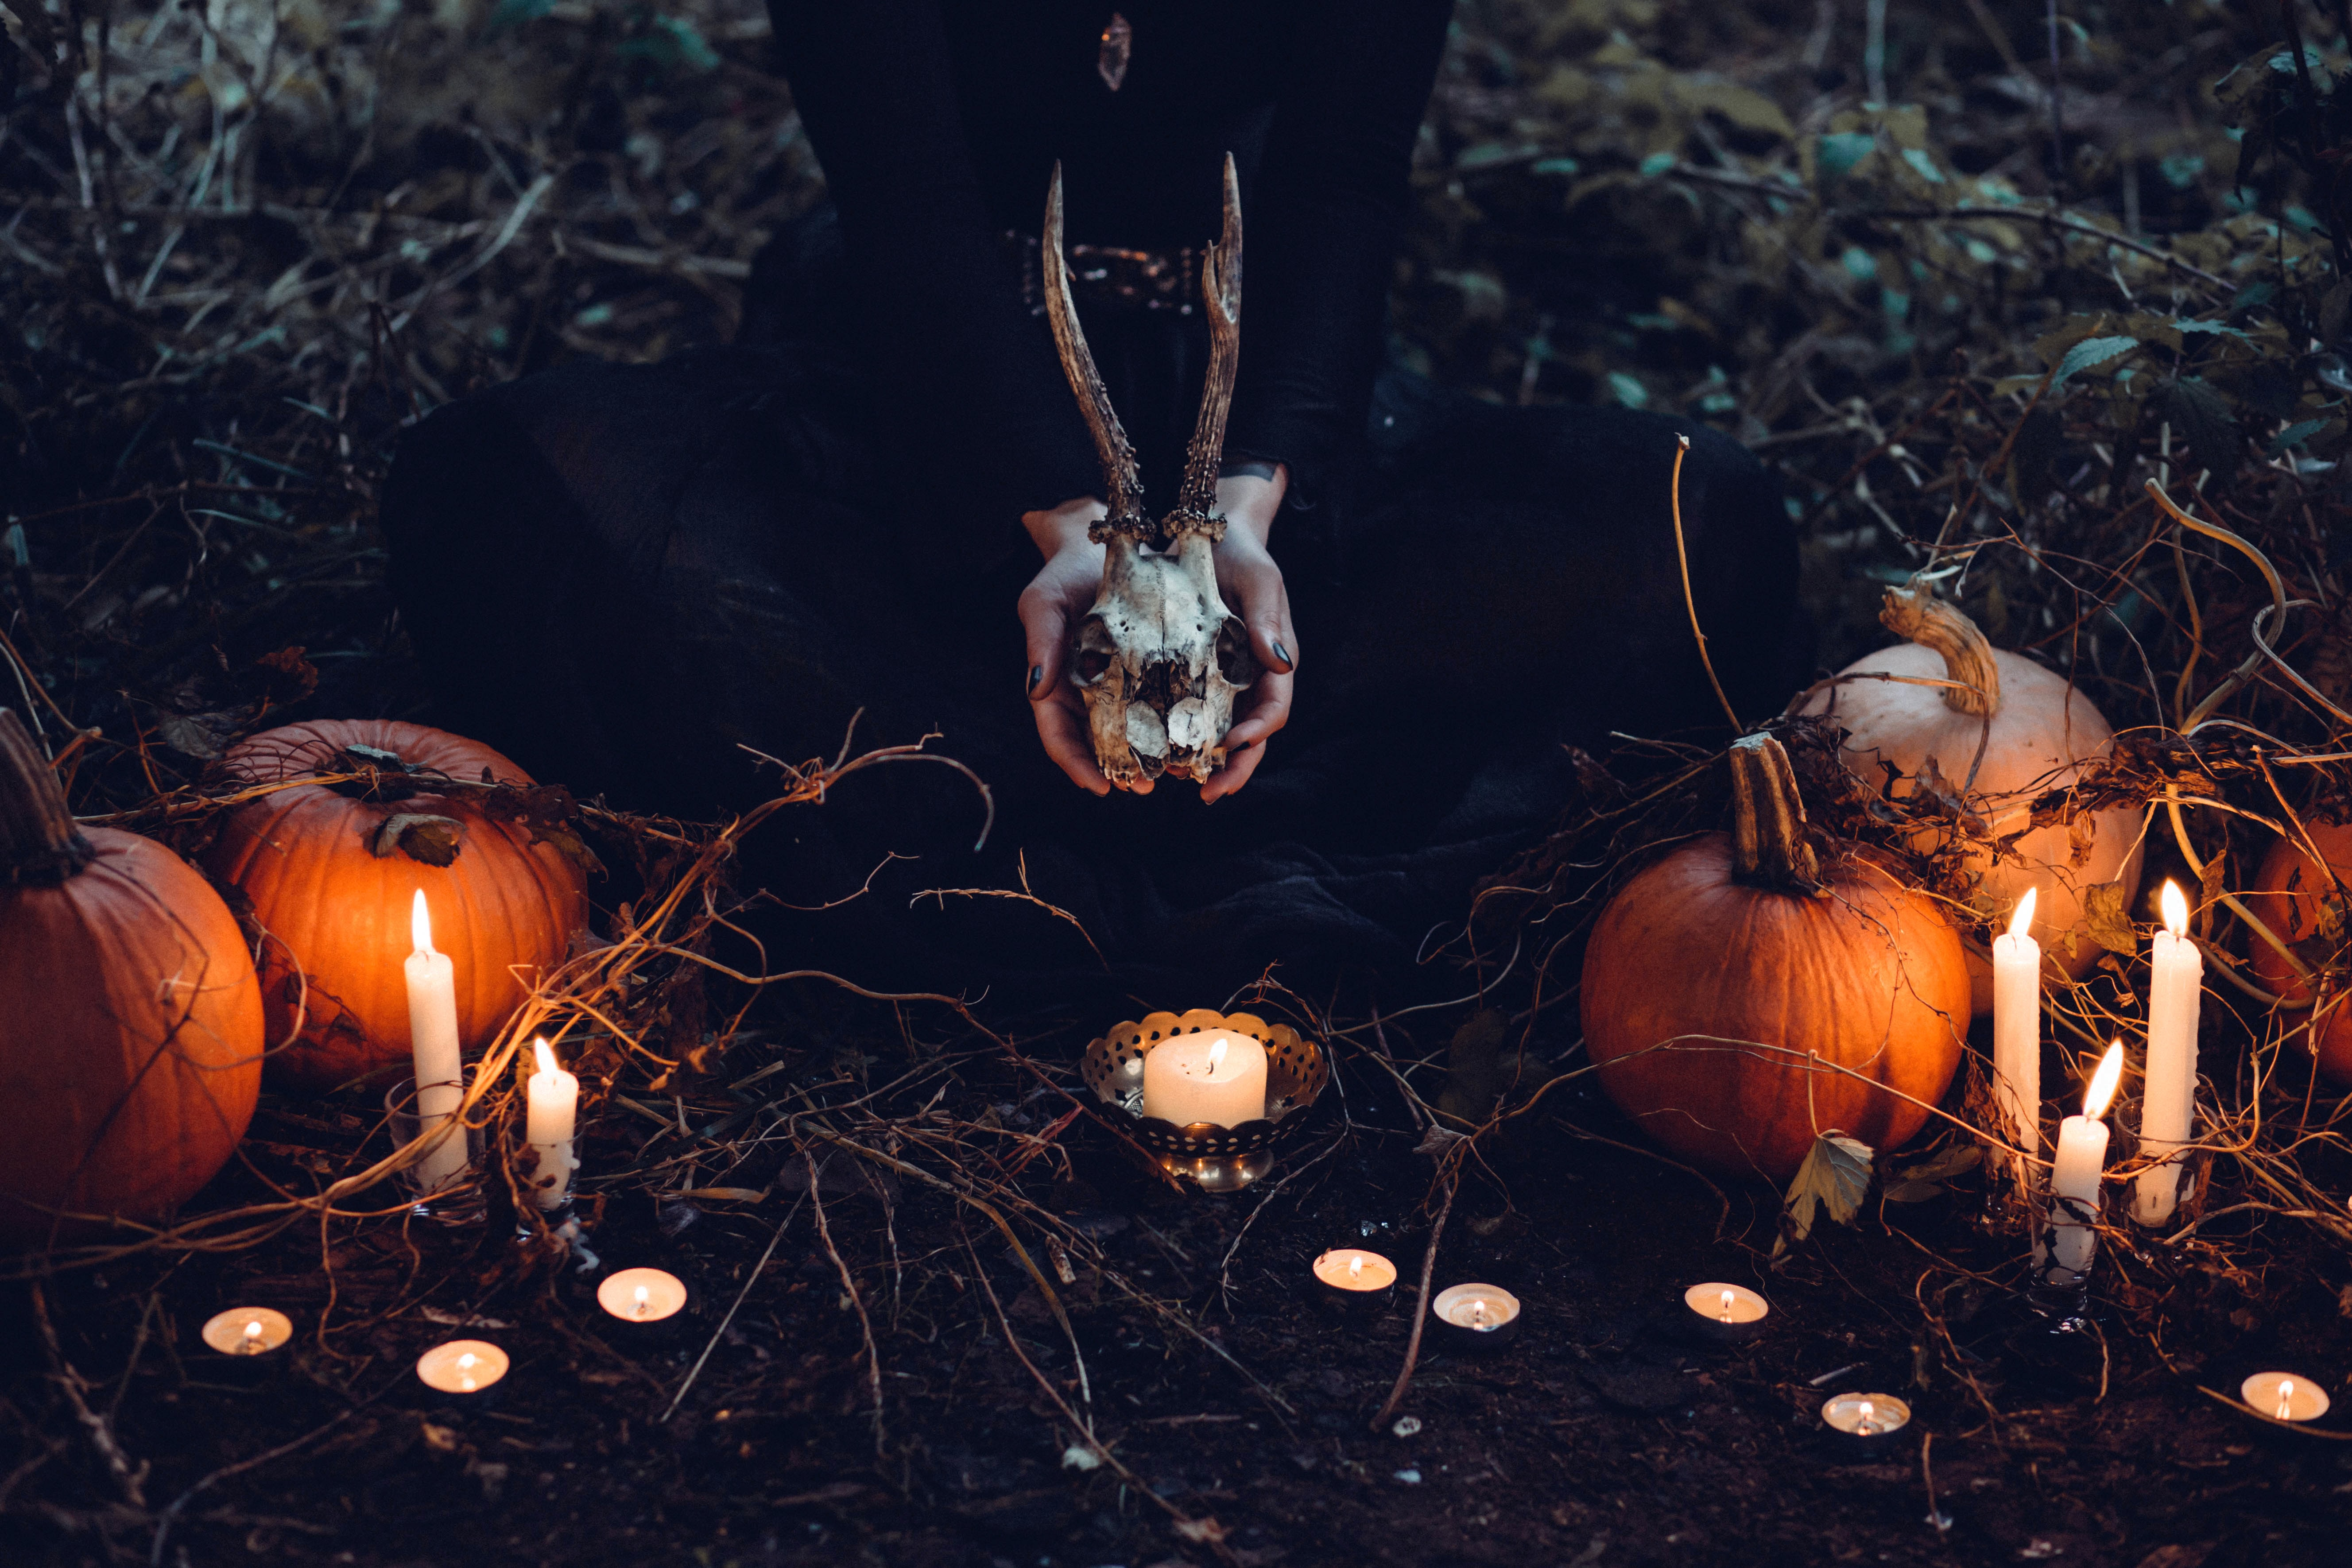 A woman holding a skull with horns close to Halloween pumpkins and lit candles in Barczewo